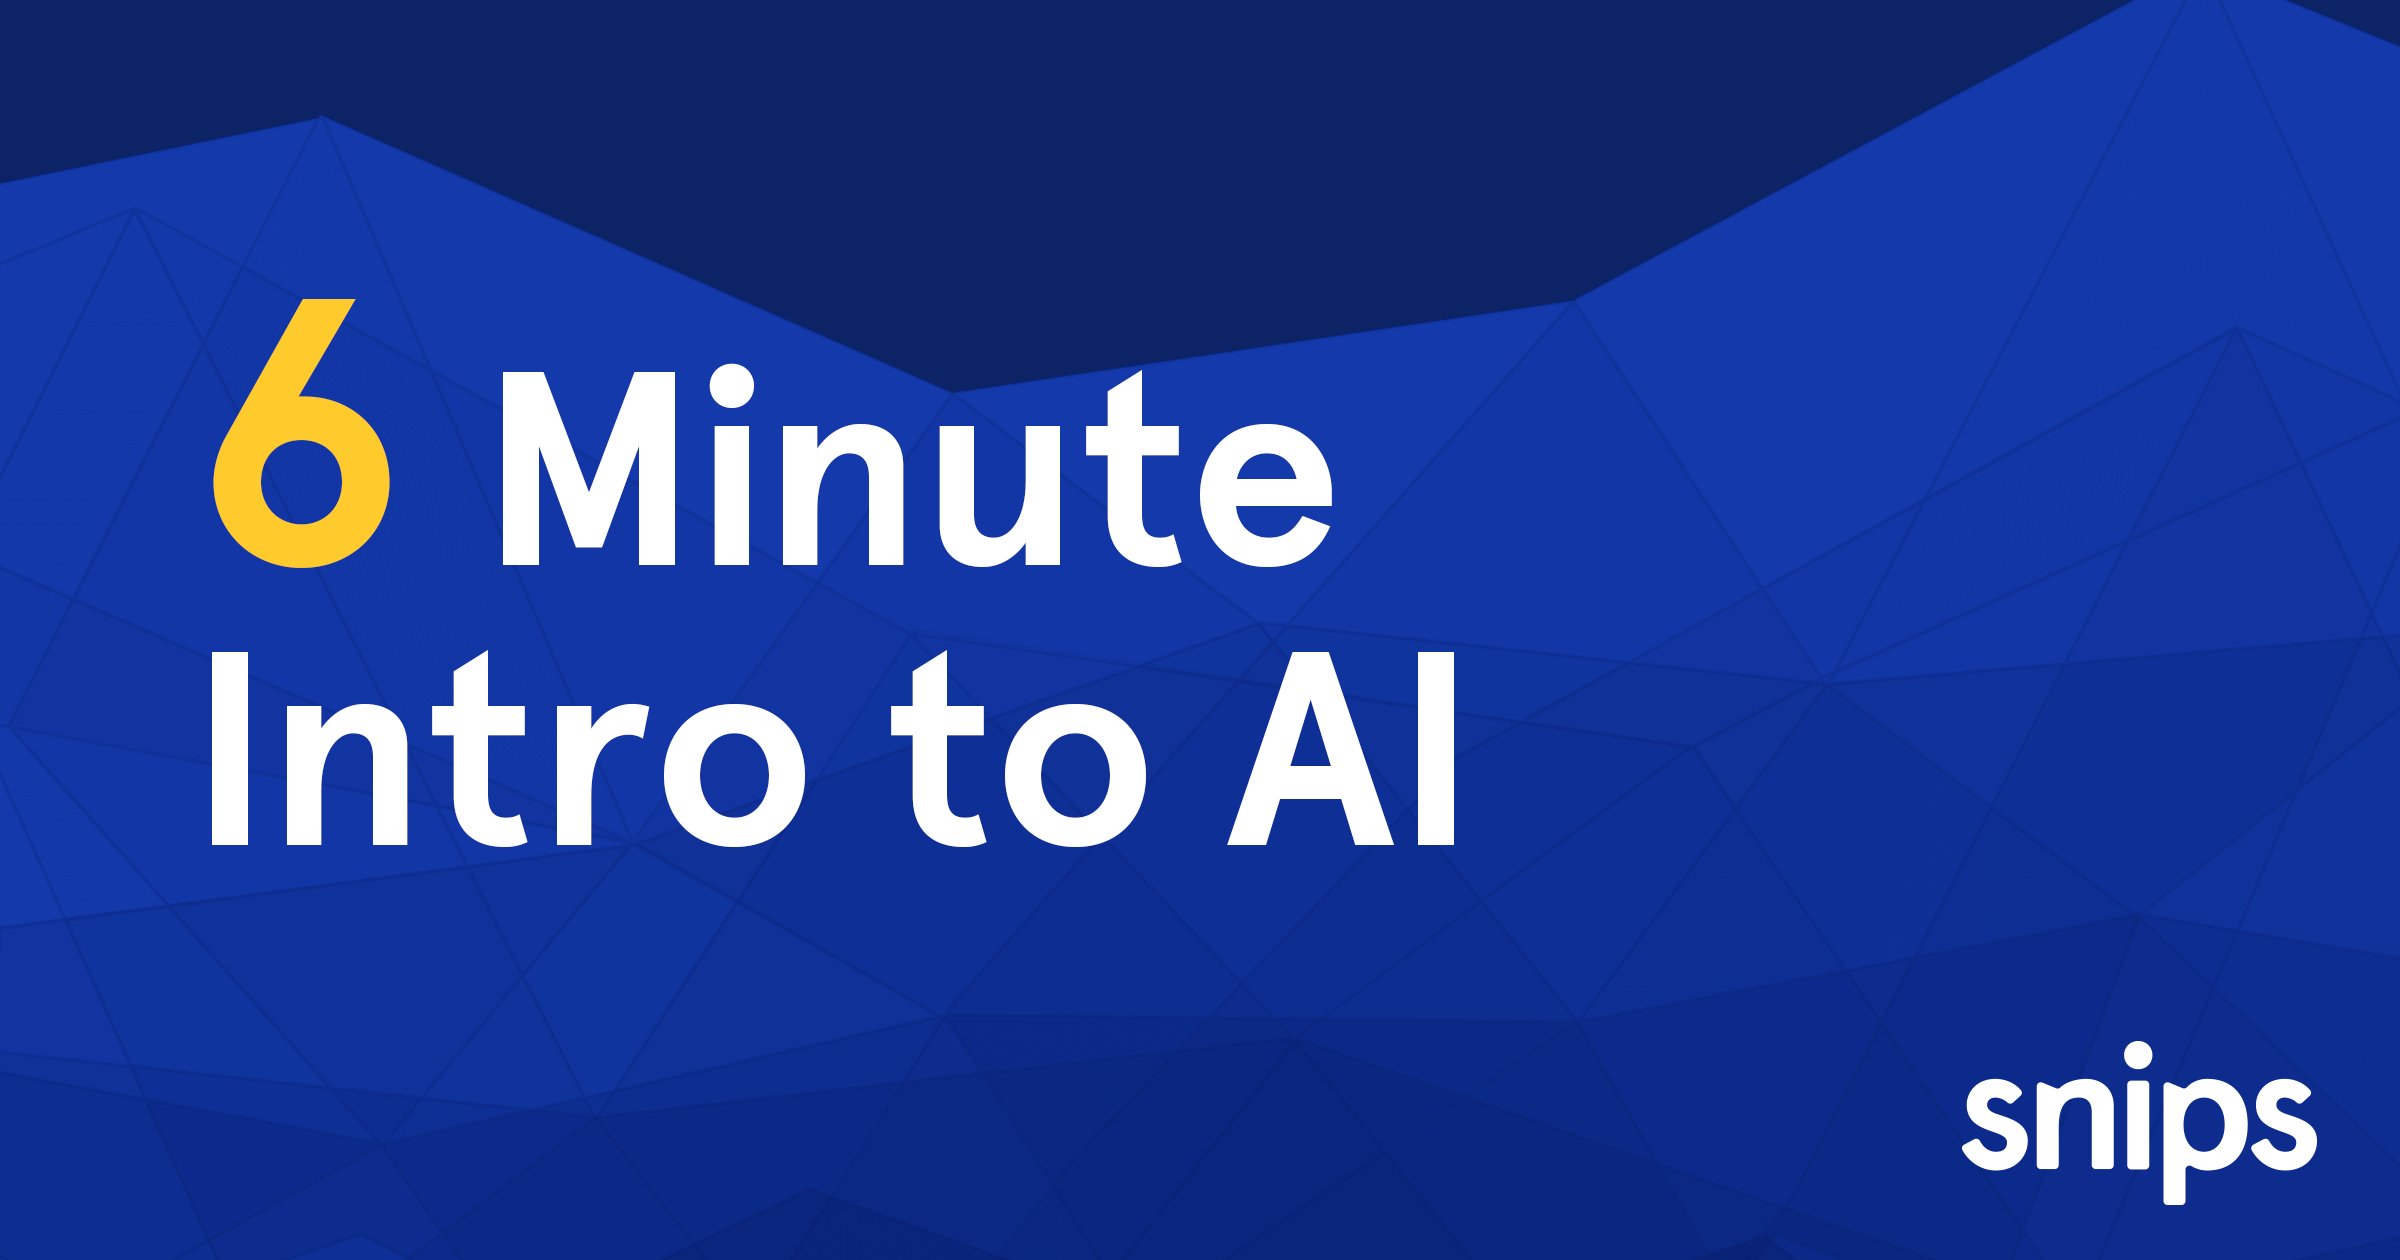 ai essays Artificial intelligence term papers, essays and research papers available.